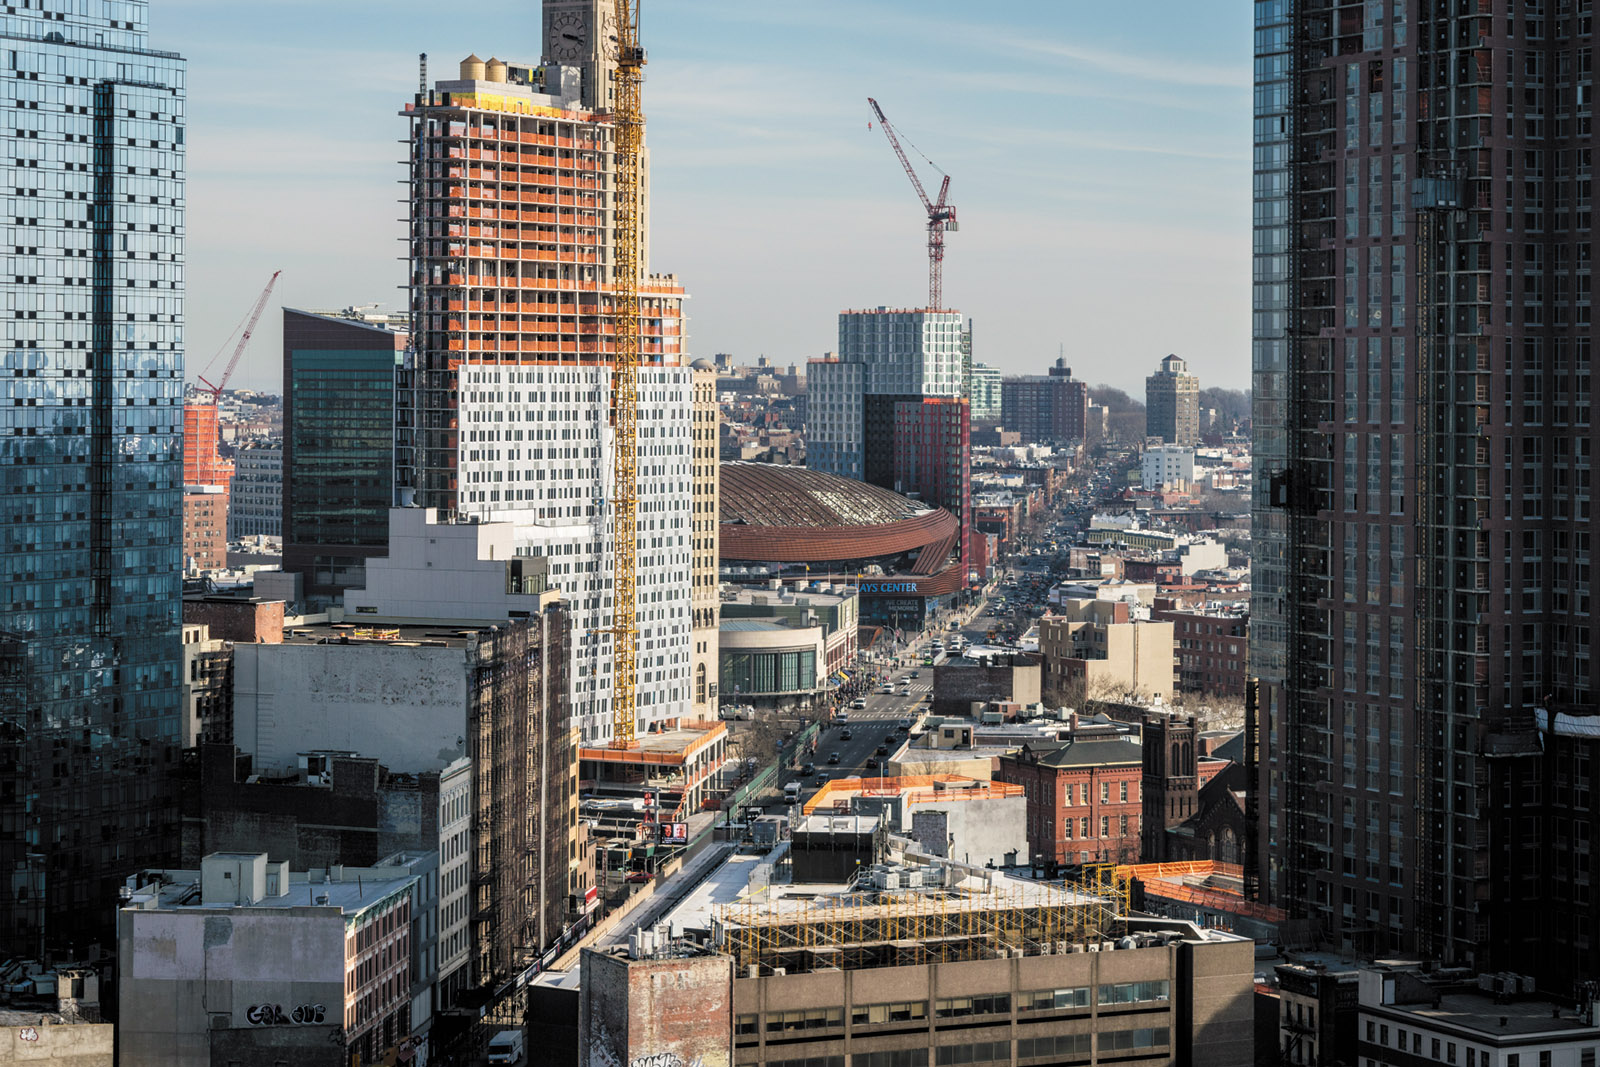 A view from 7 DeKalb Avenue, an apartment tower in Downtown Brooklyn. Eighty percent of its 250 apartments are subsidized units, for which there were 87,754 applications when it opened.